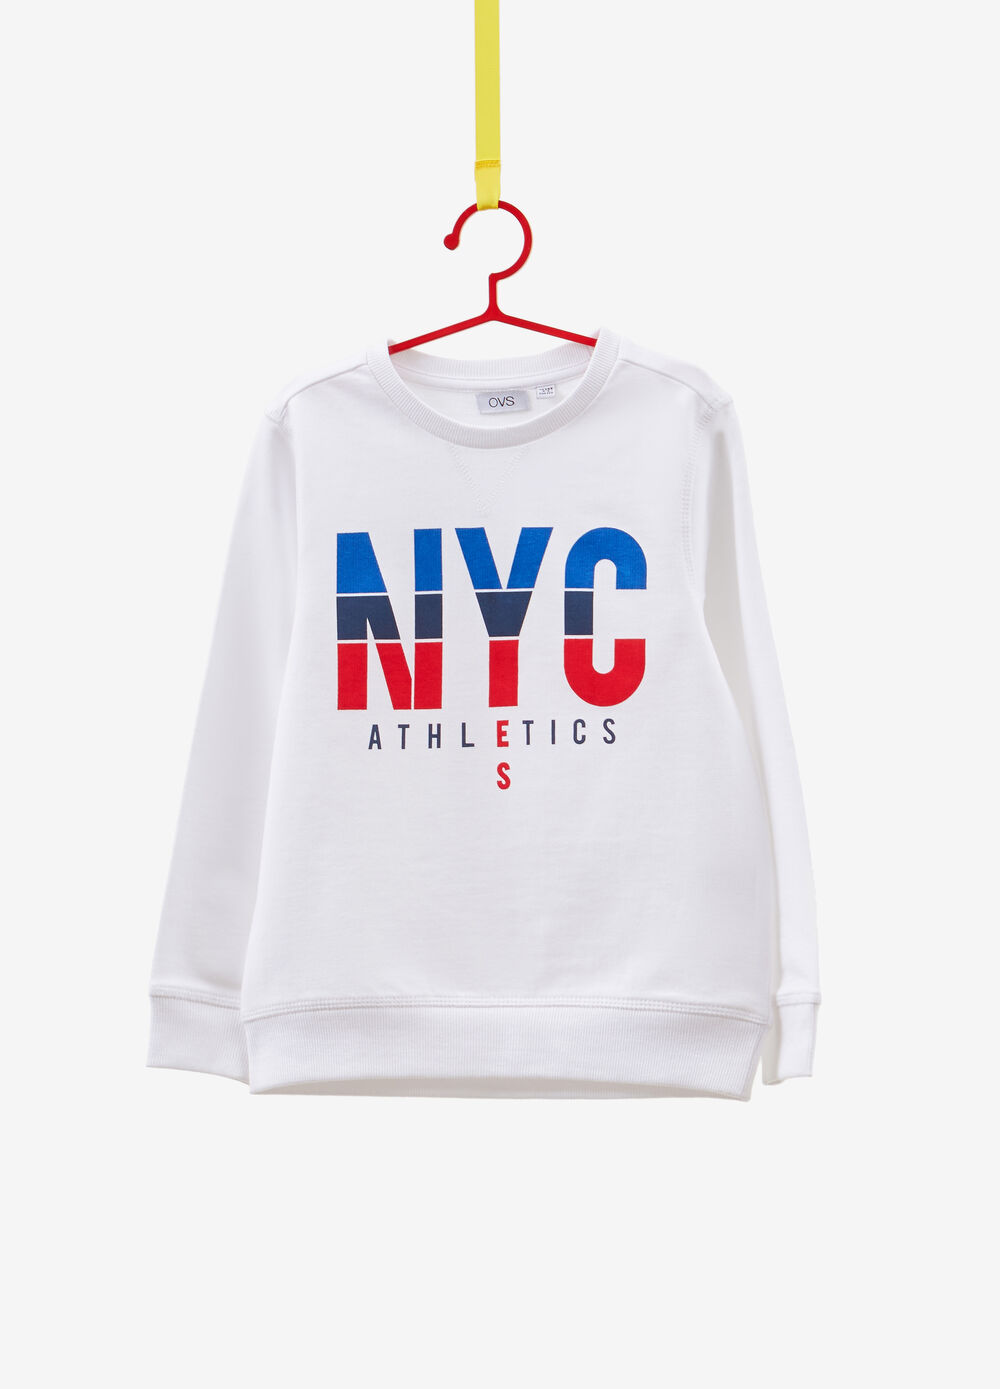 100% cotton sweatshirt with lettering